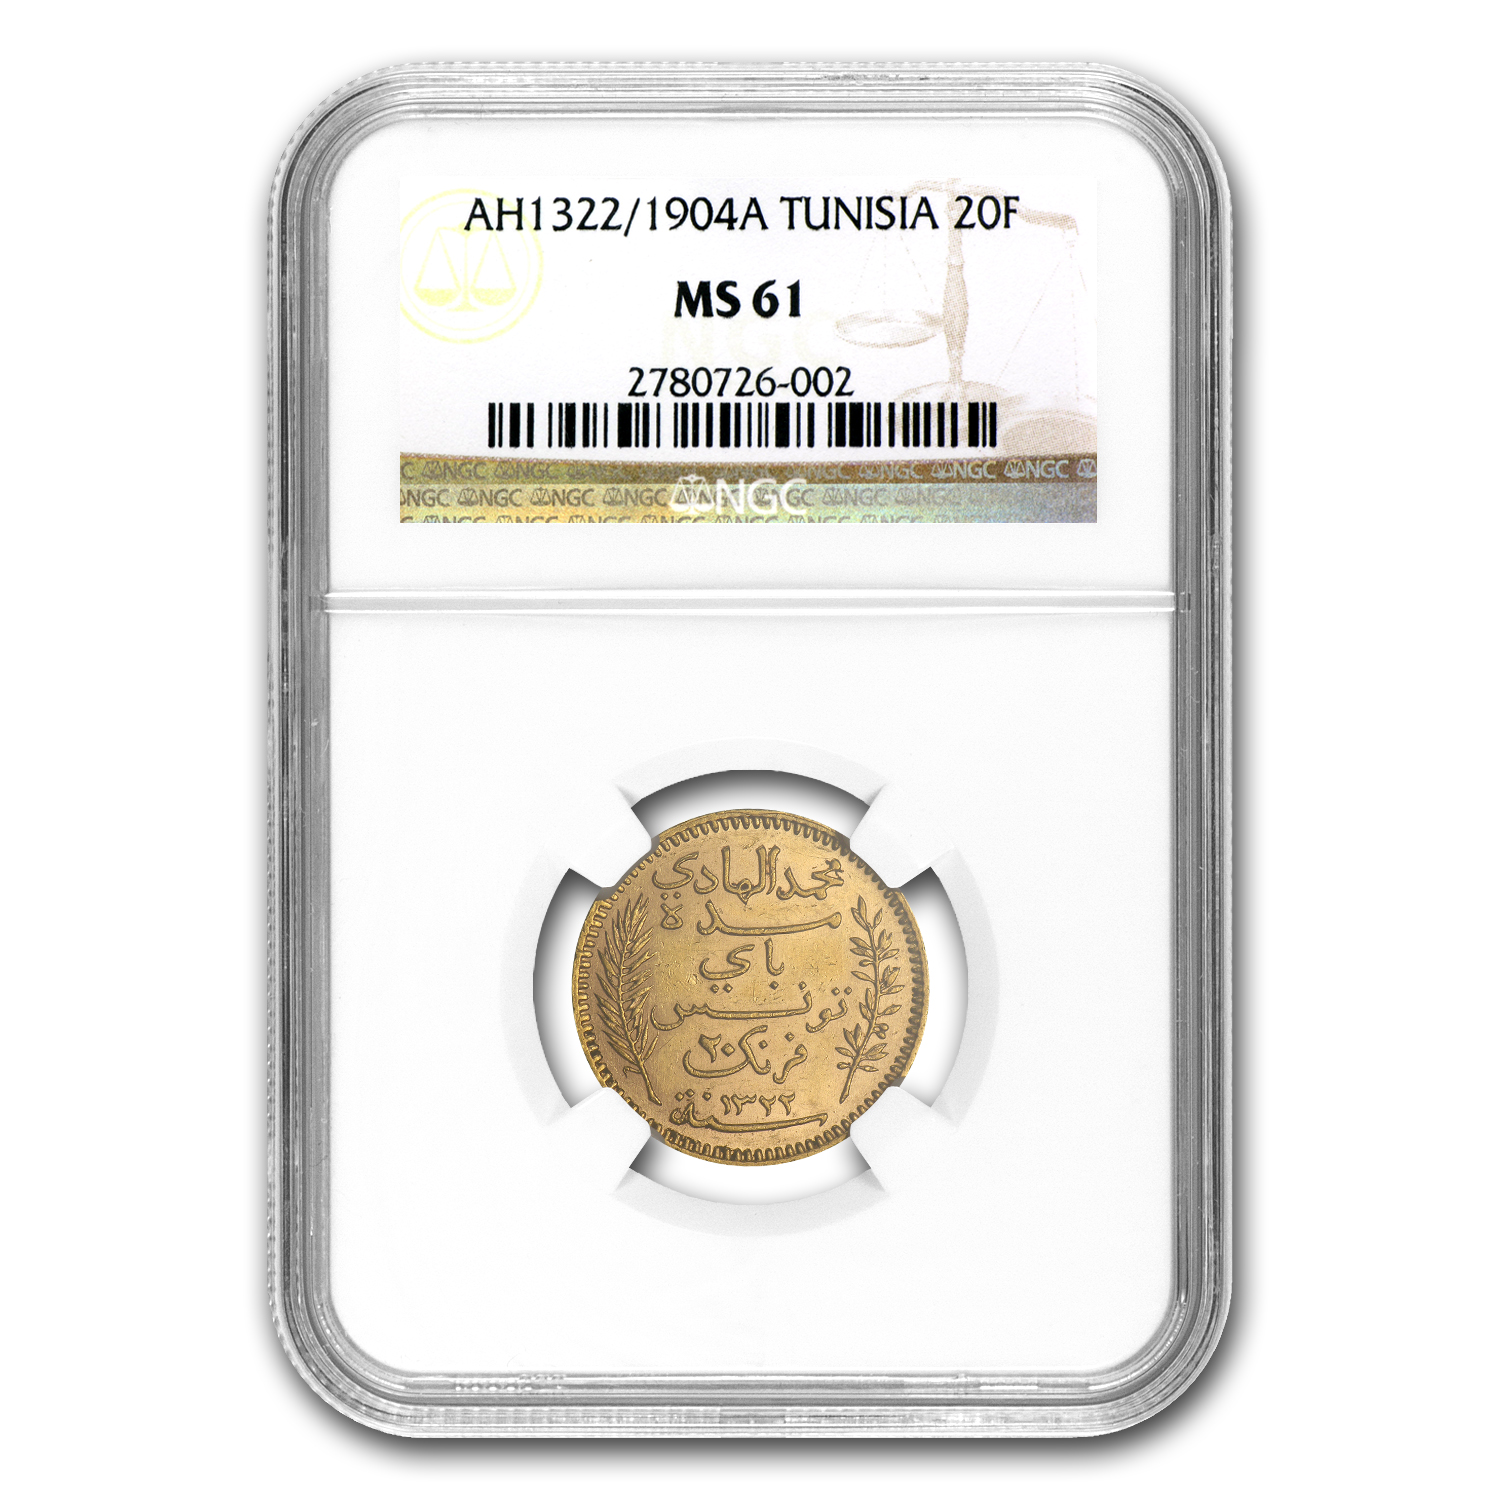 1904 Tunisia Gold 20 Francs MS-61 NGC